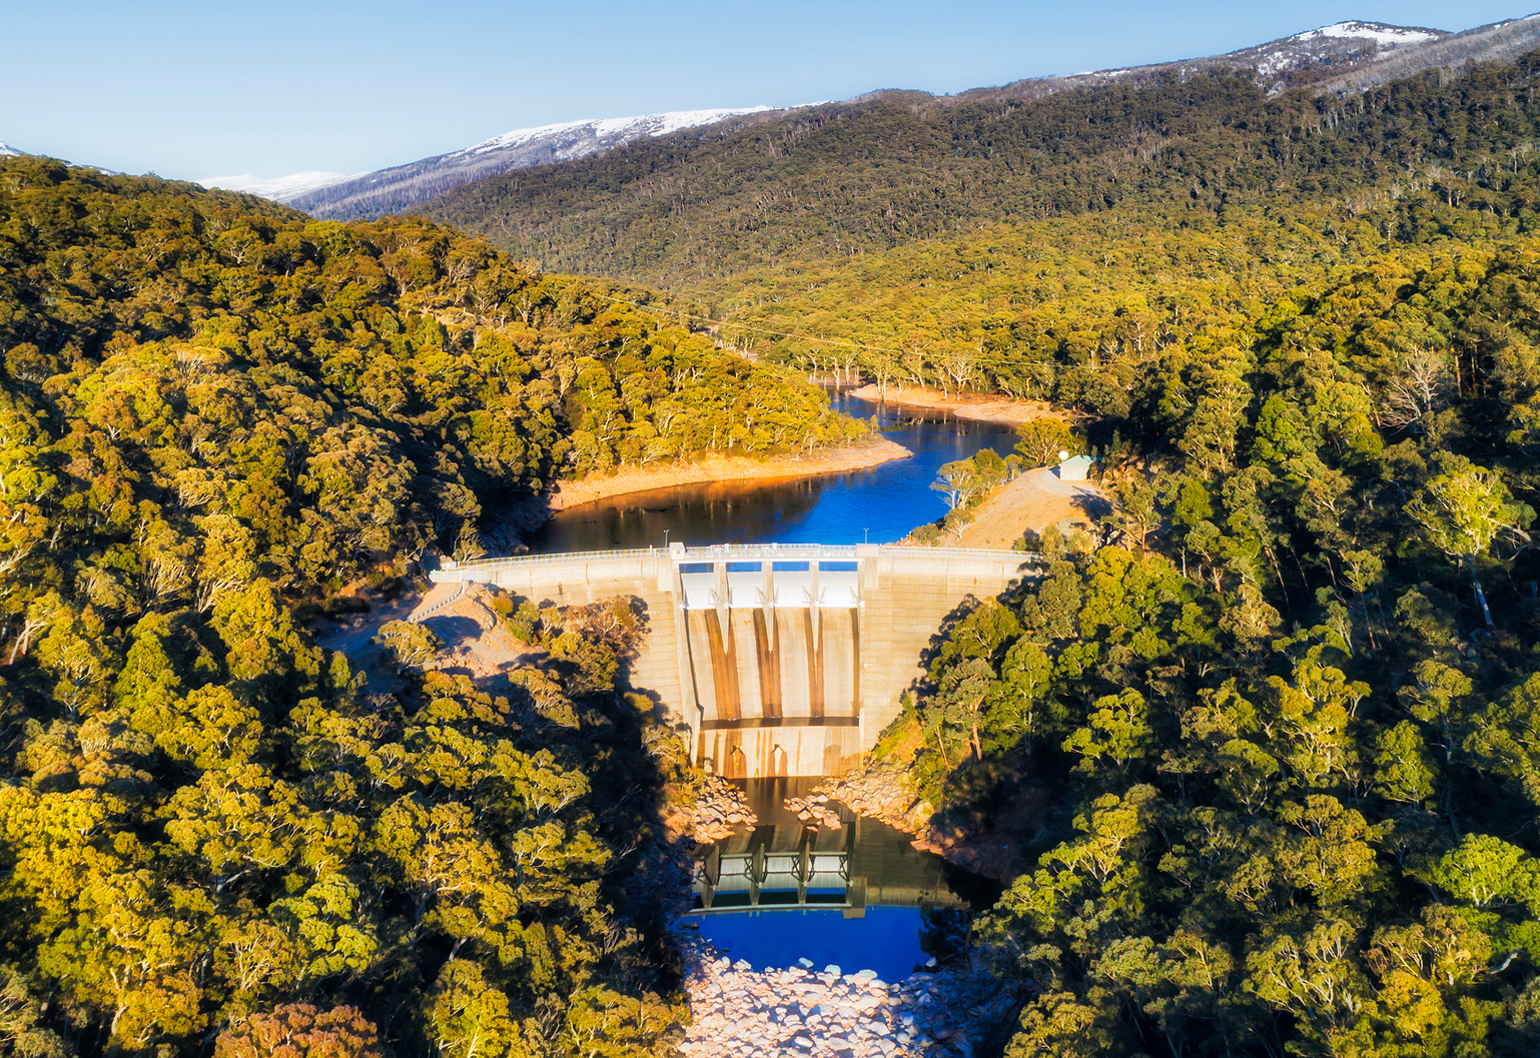 Snowy Mountains hydro scheme